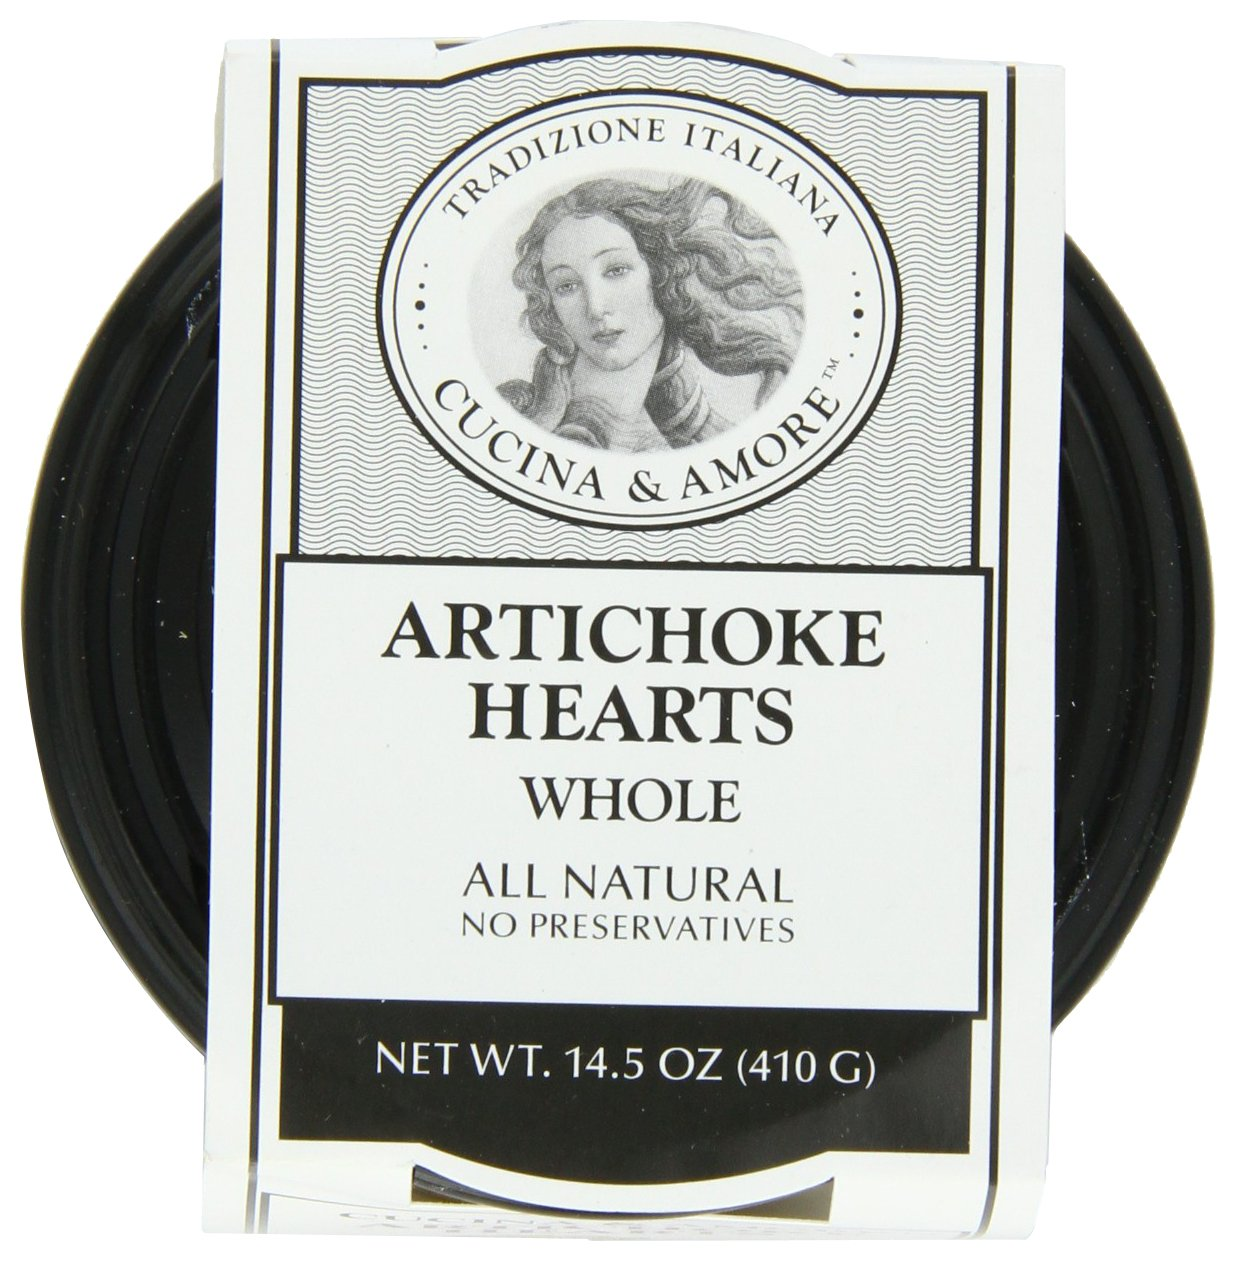 Cucina and Amore Grilled Marinated Whole Artichokes, 14.5 Ounce (Pack of 6)